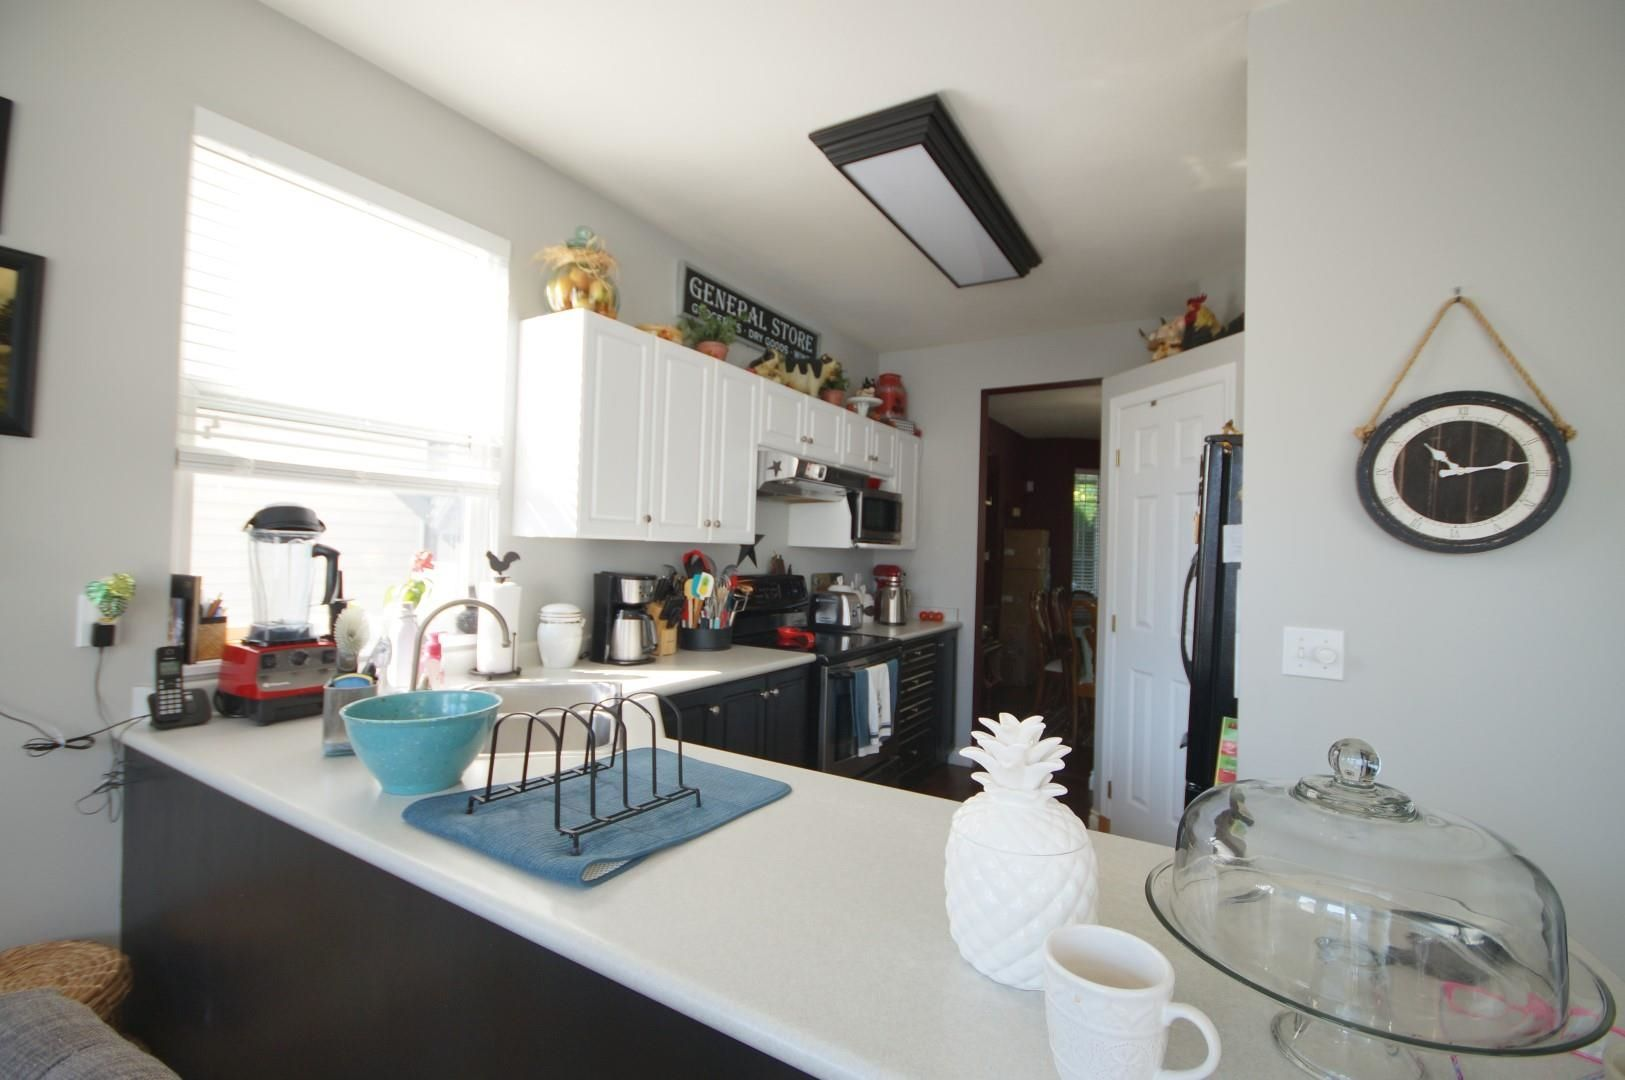 Photo 8: Photos: 6464 185 STREET in Surrey: Cloverdale BC House for sale (Cloverdale)  : MLS®# R2613589